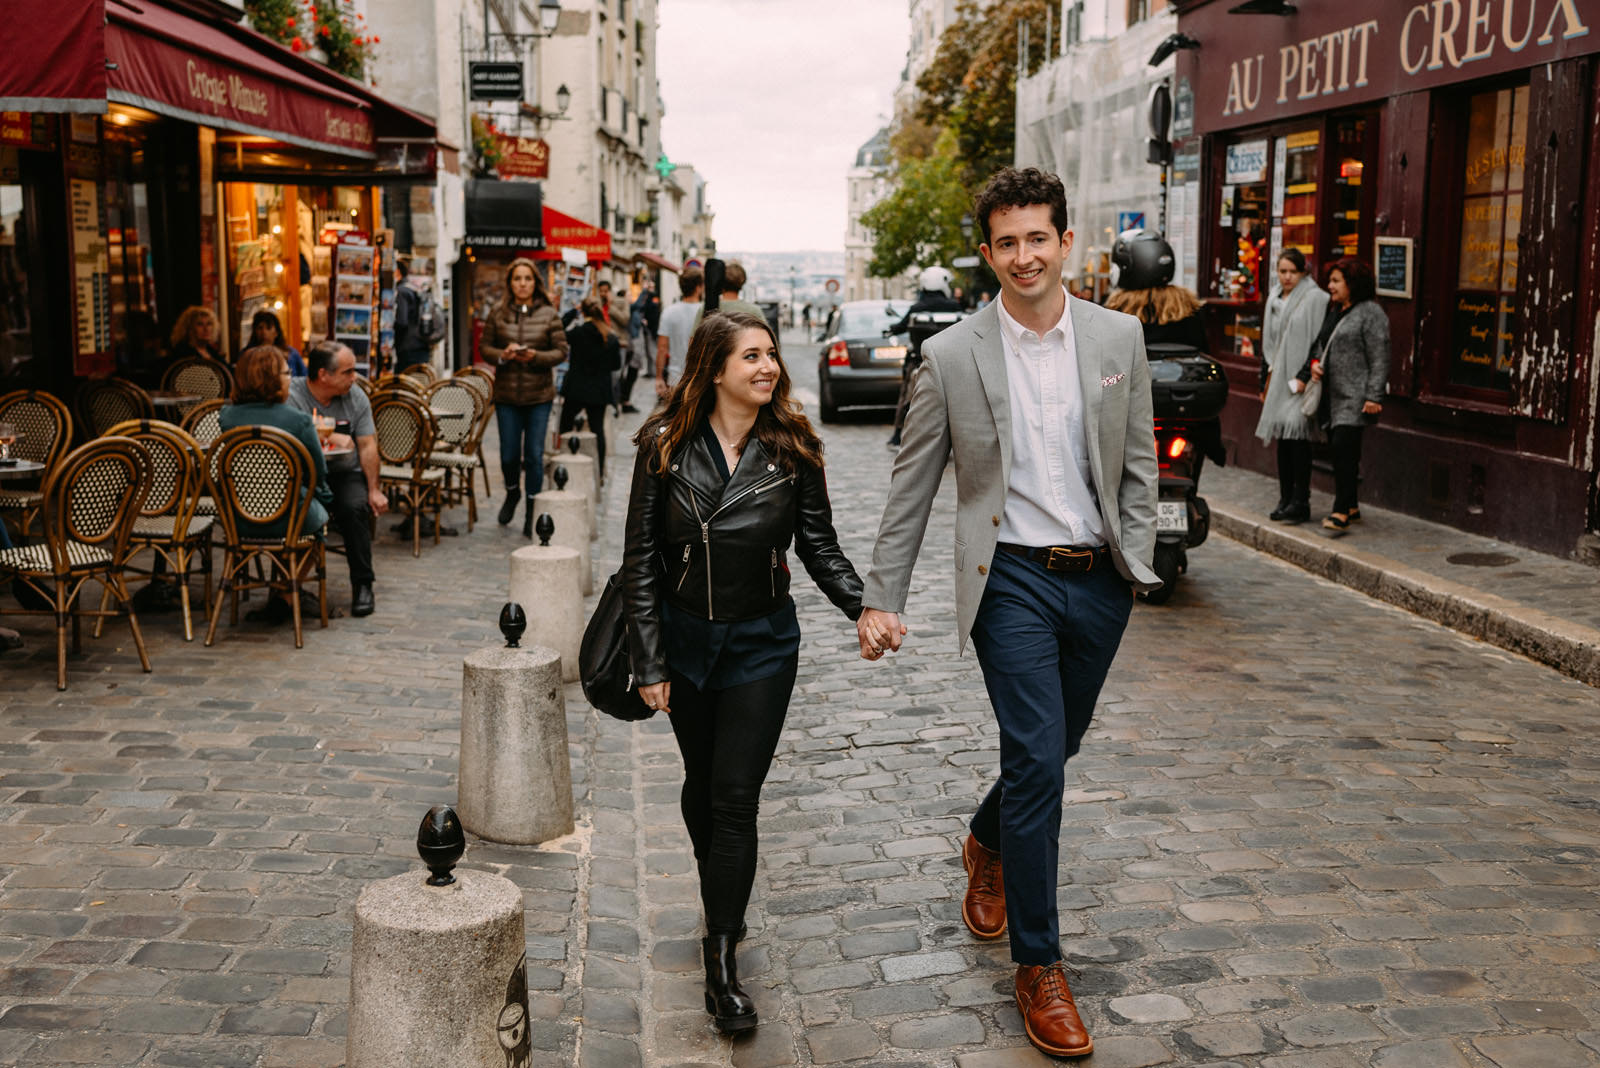 Couple just got engaged in Montmartre, Paris - photo by Luke Sezeck